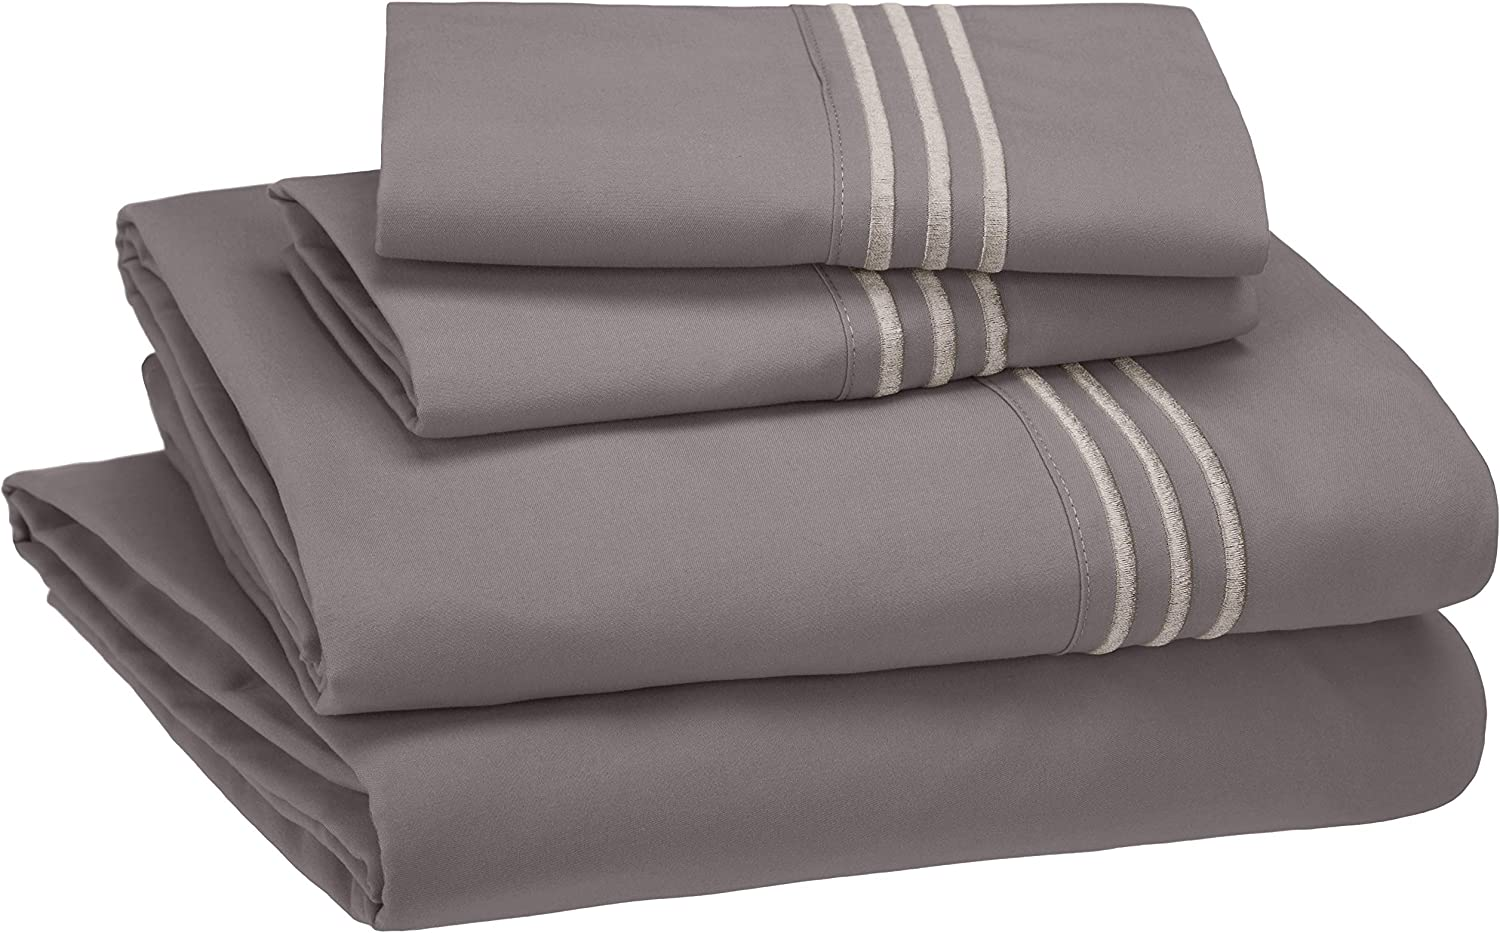 AmazonBasics Premium, Easy-Wash Embroidered Hotel Stitch 120 GSM Sheet Set - King, Dark Grey